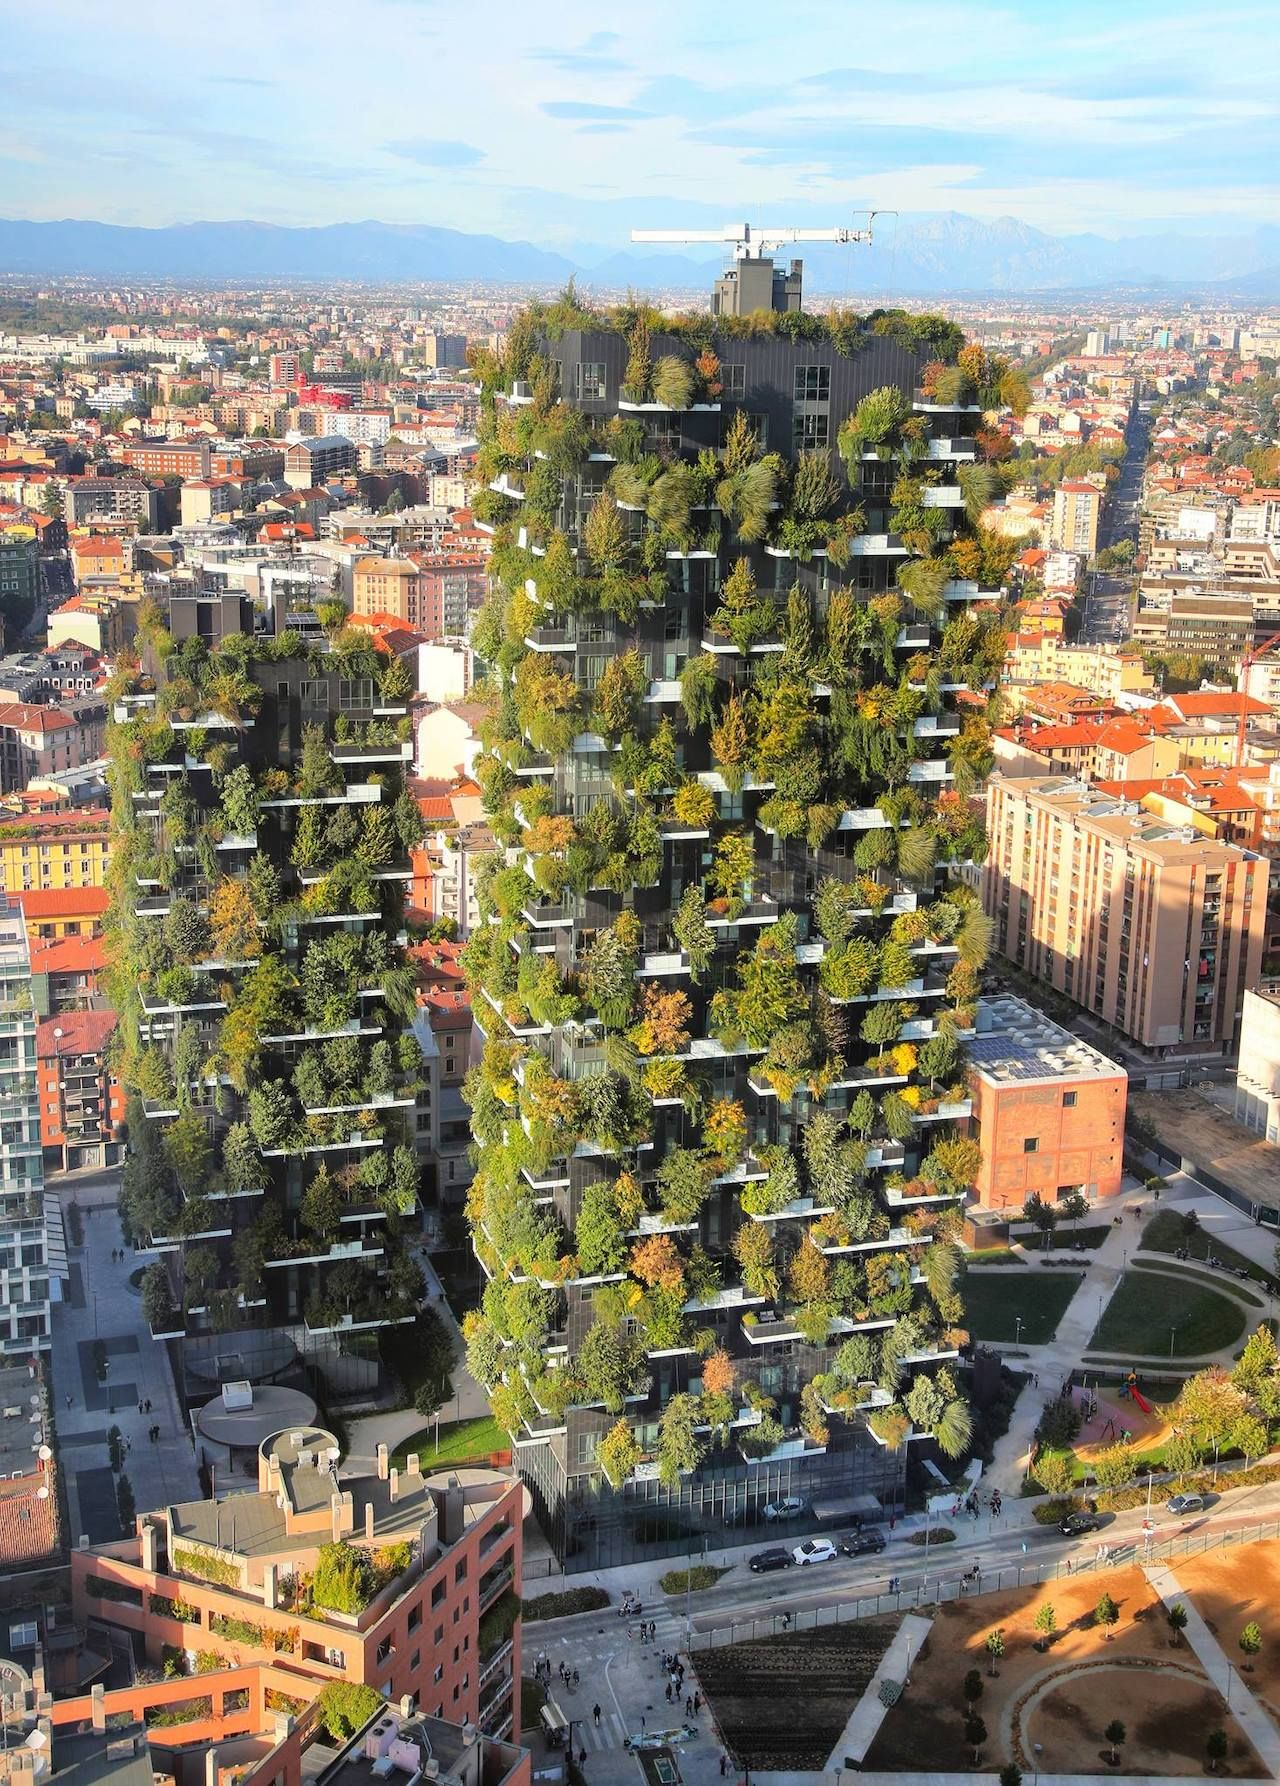 Building covered in trees, Milan's Library of Trees